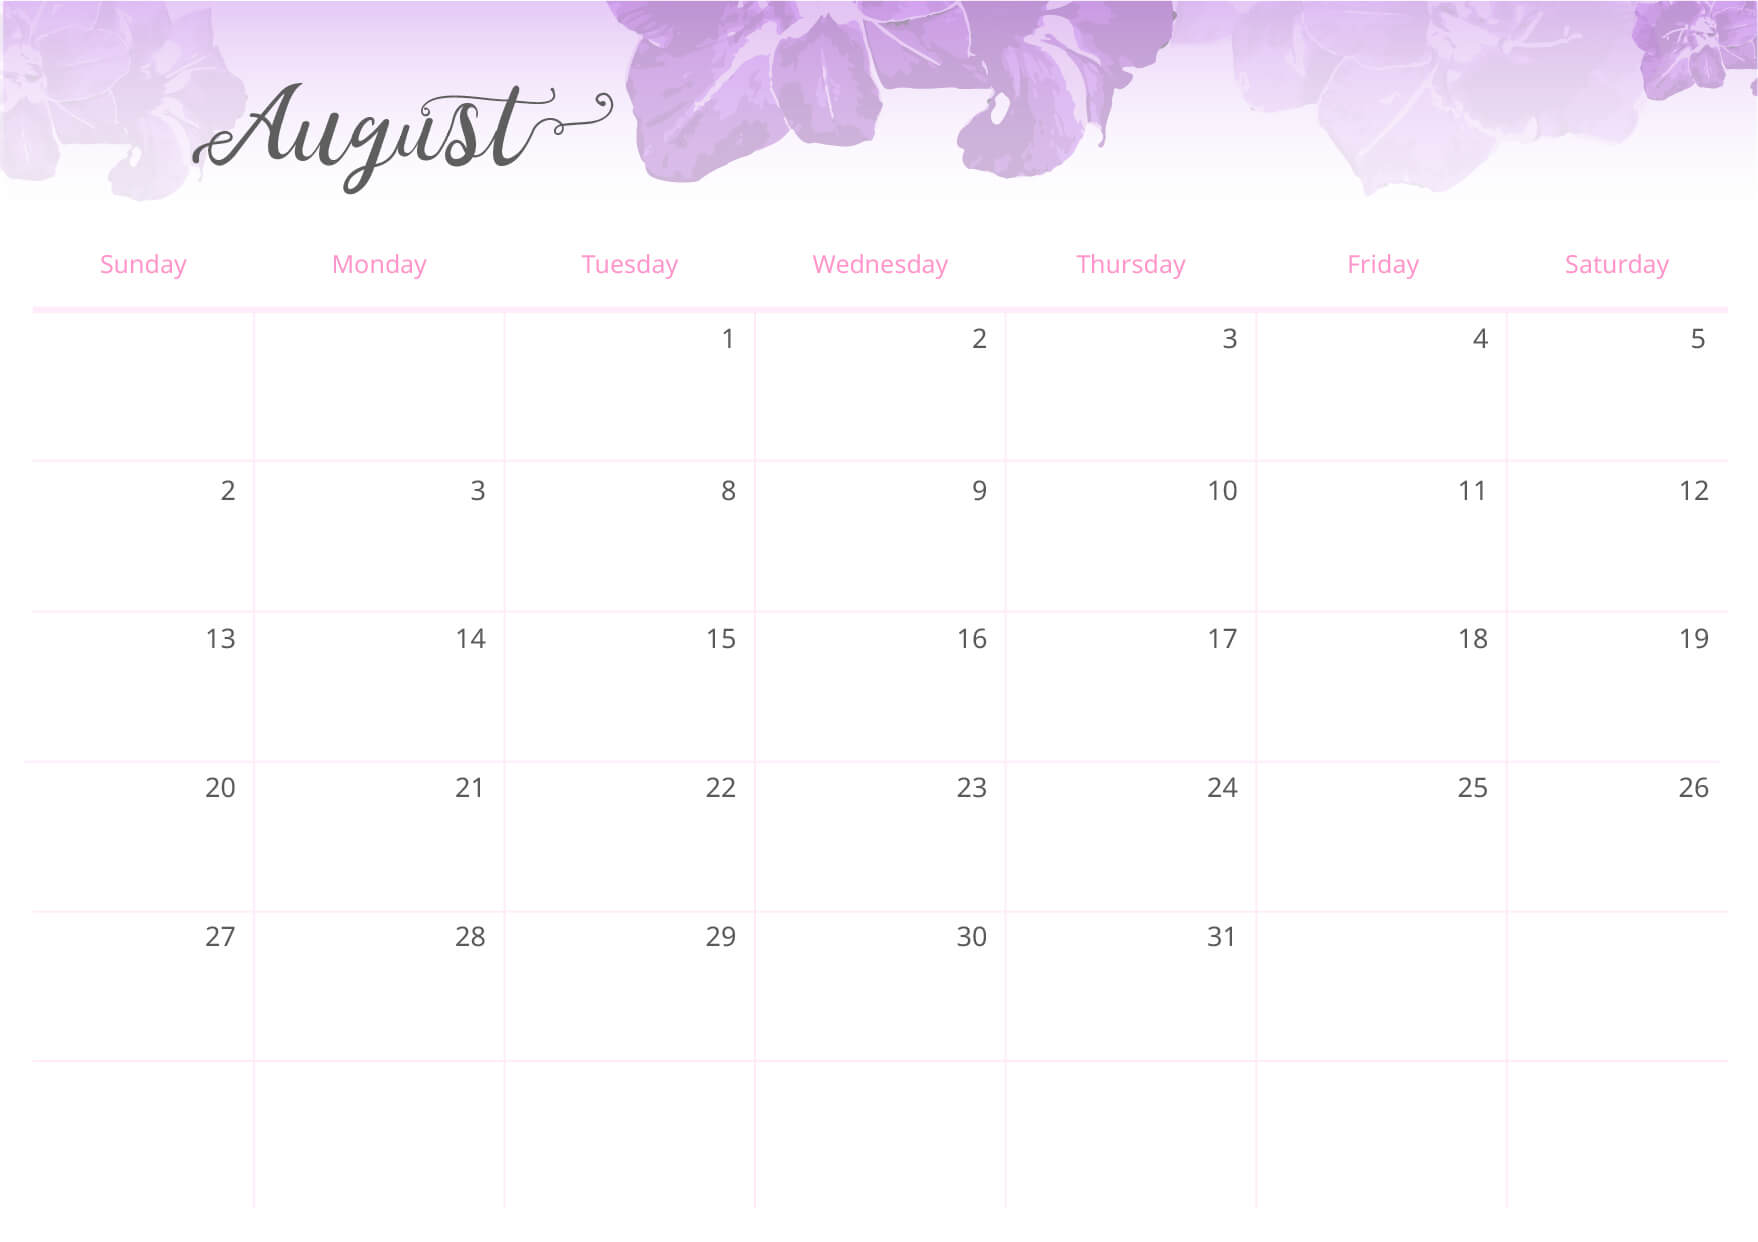 Hang the calendar near the front door or beside your bed so it is always visible.